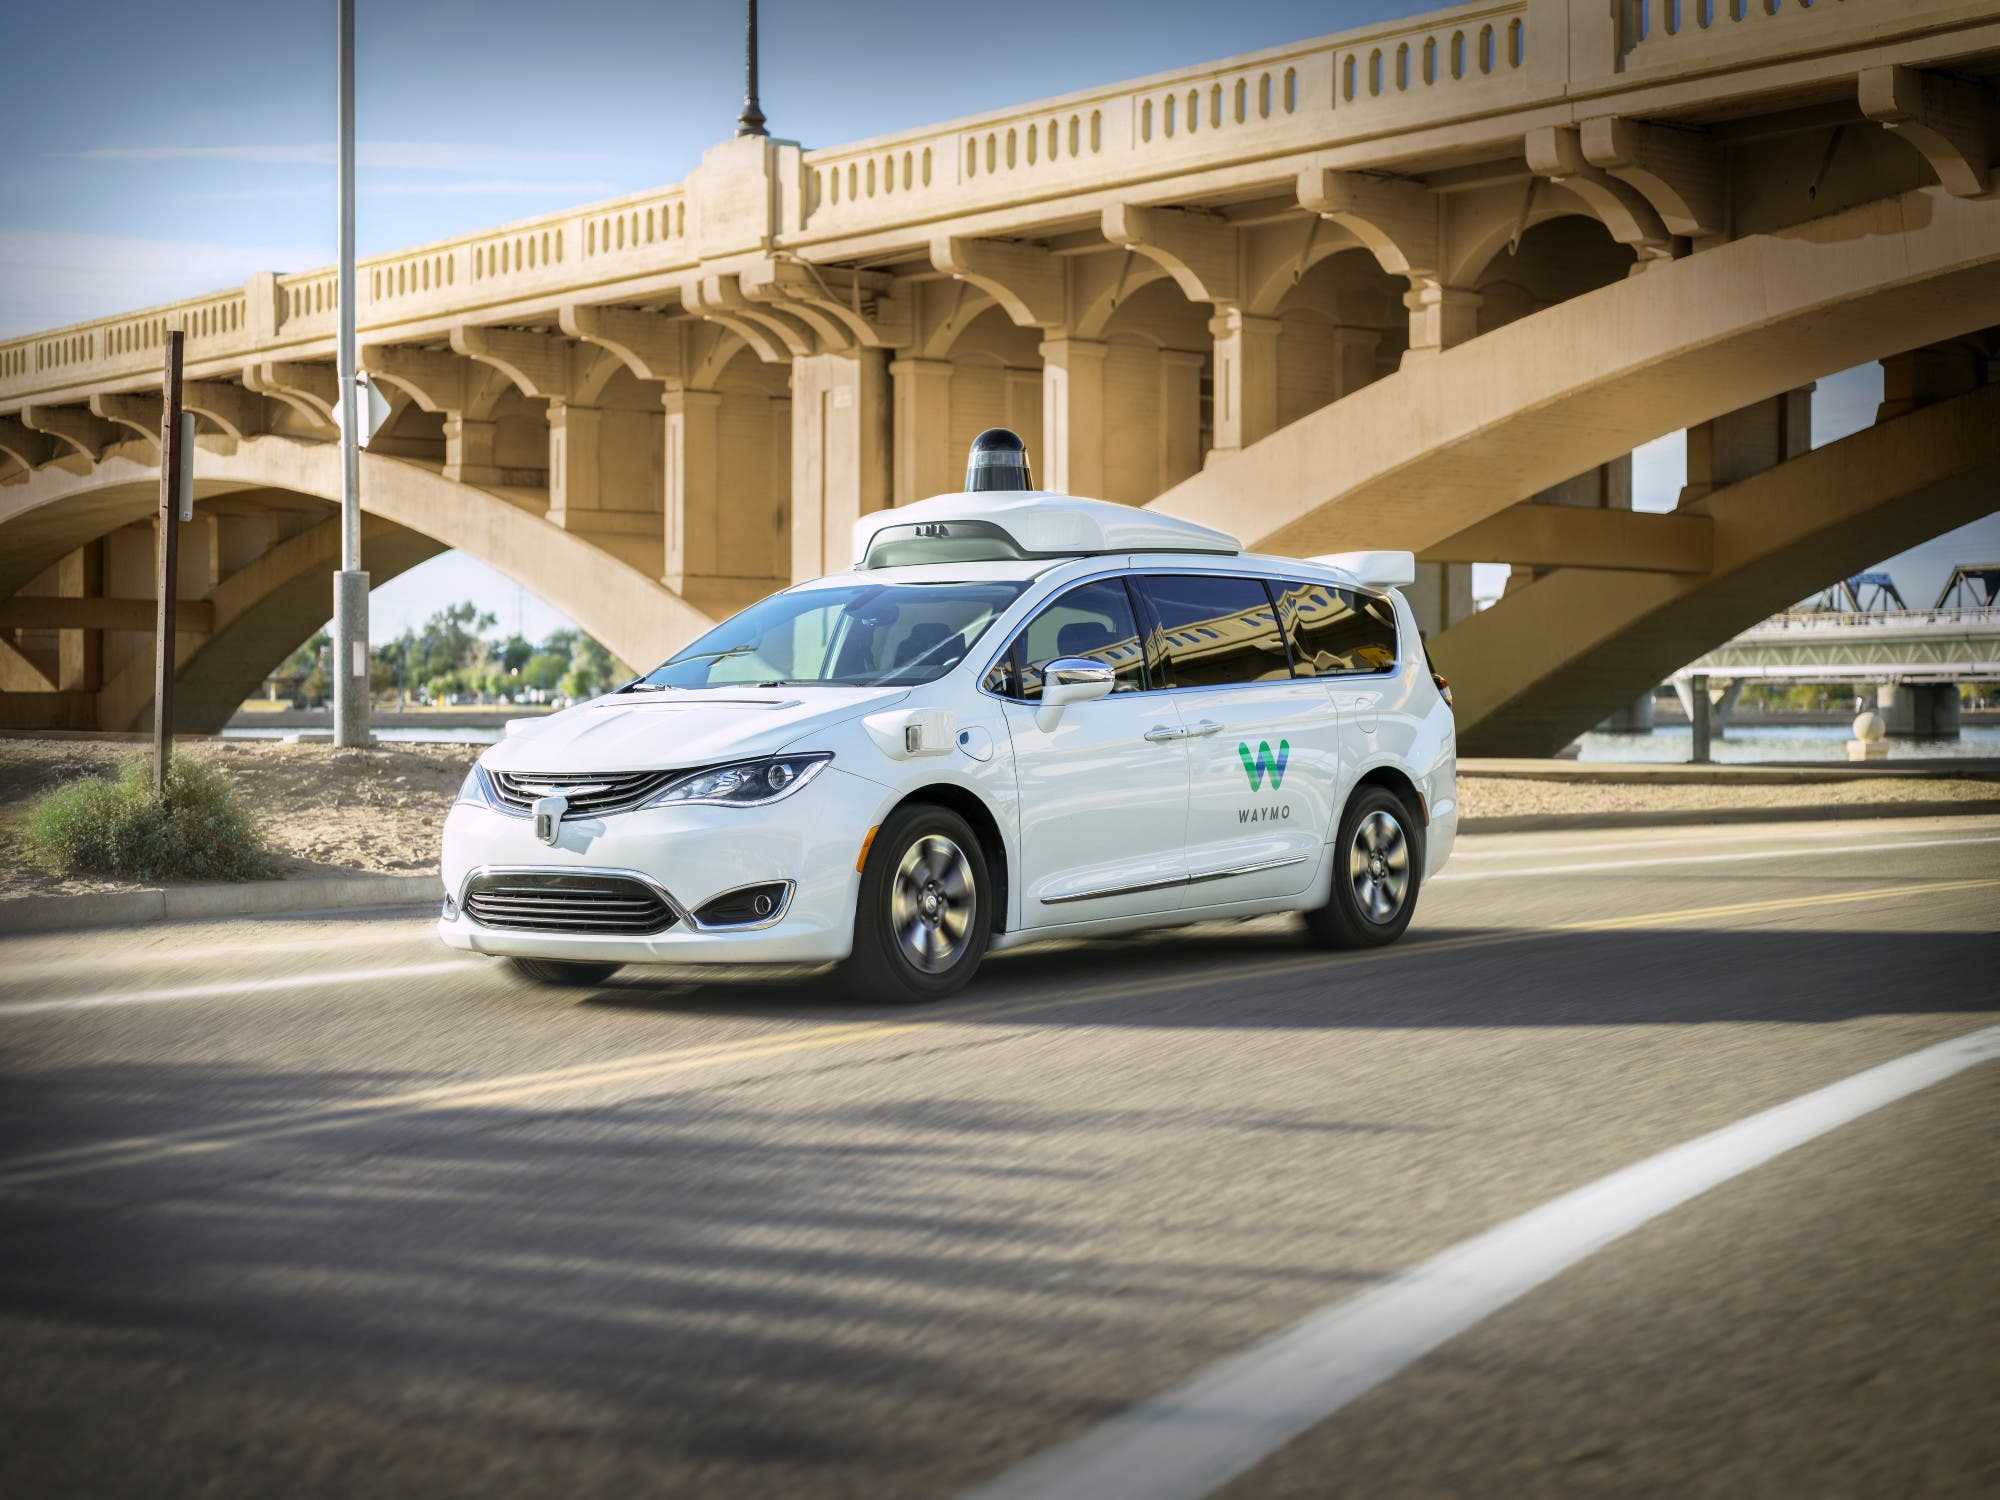 Are Self-Driving Cars Really Going to Replace All Human